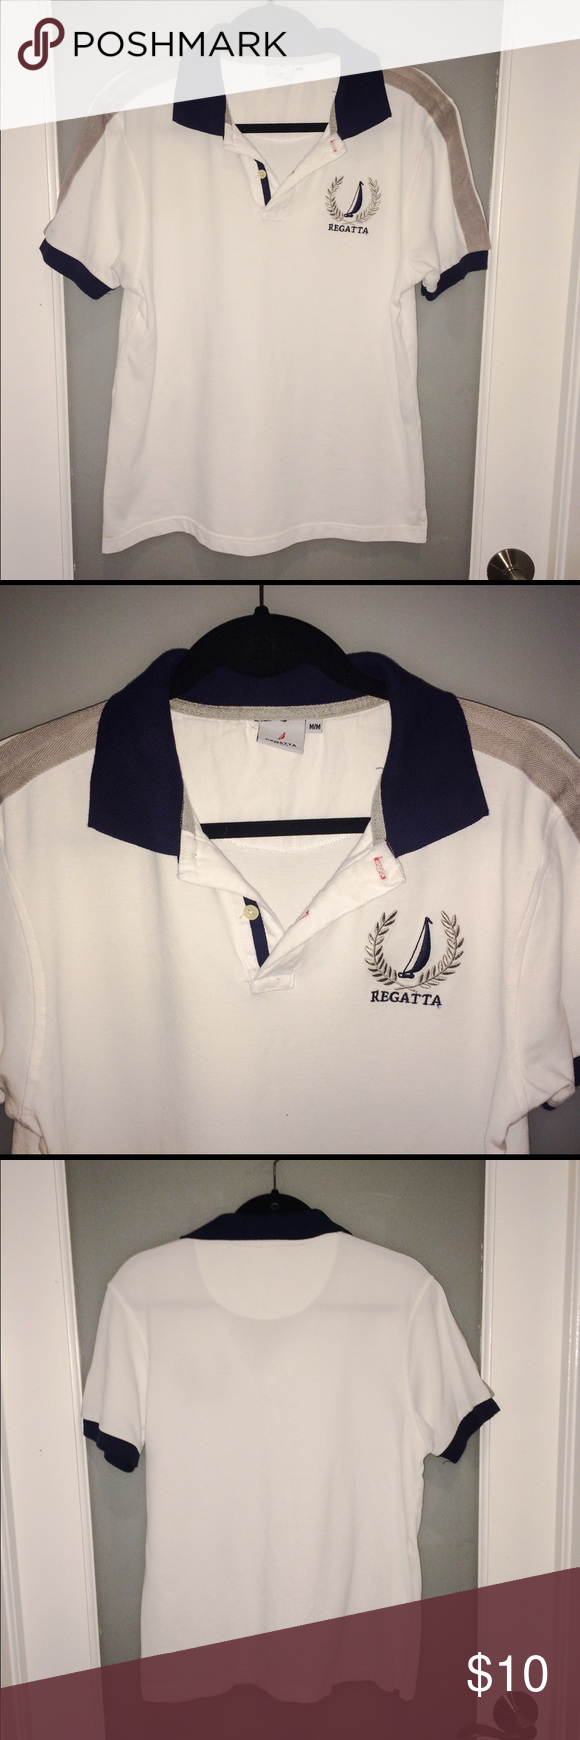 Regatta sport mens polo shirt Regatta Sport mens polo shirt. Size M. Good condition. Regatta Shirts Polos